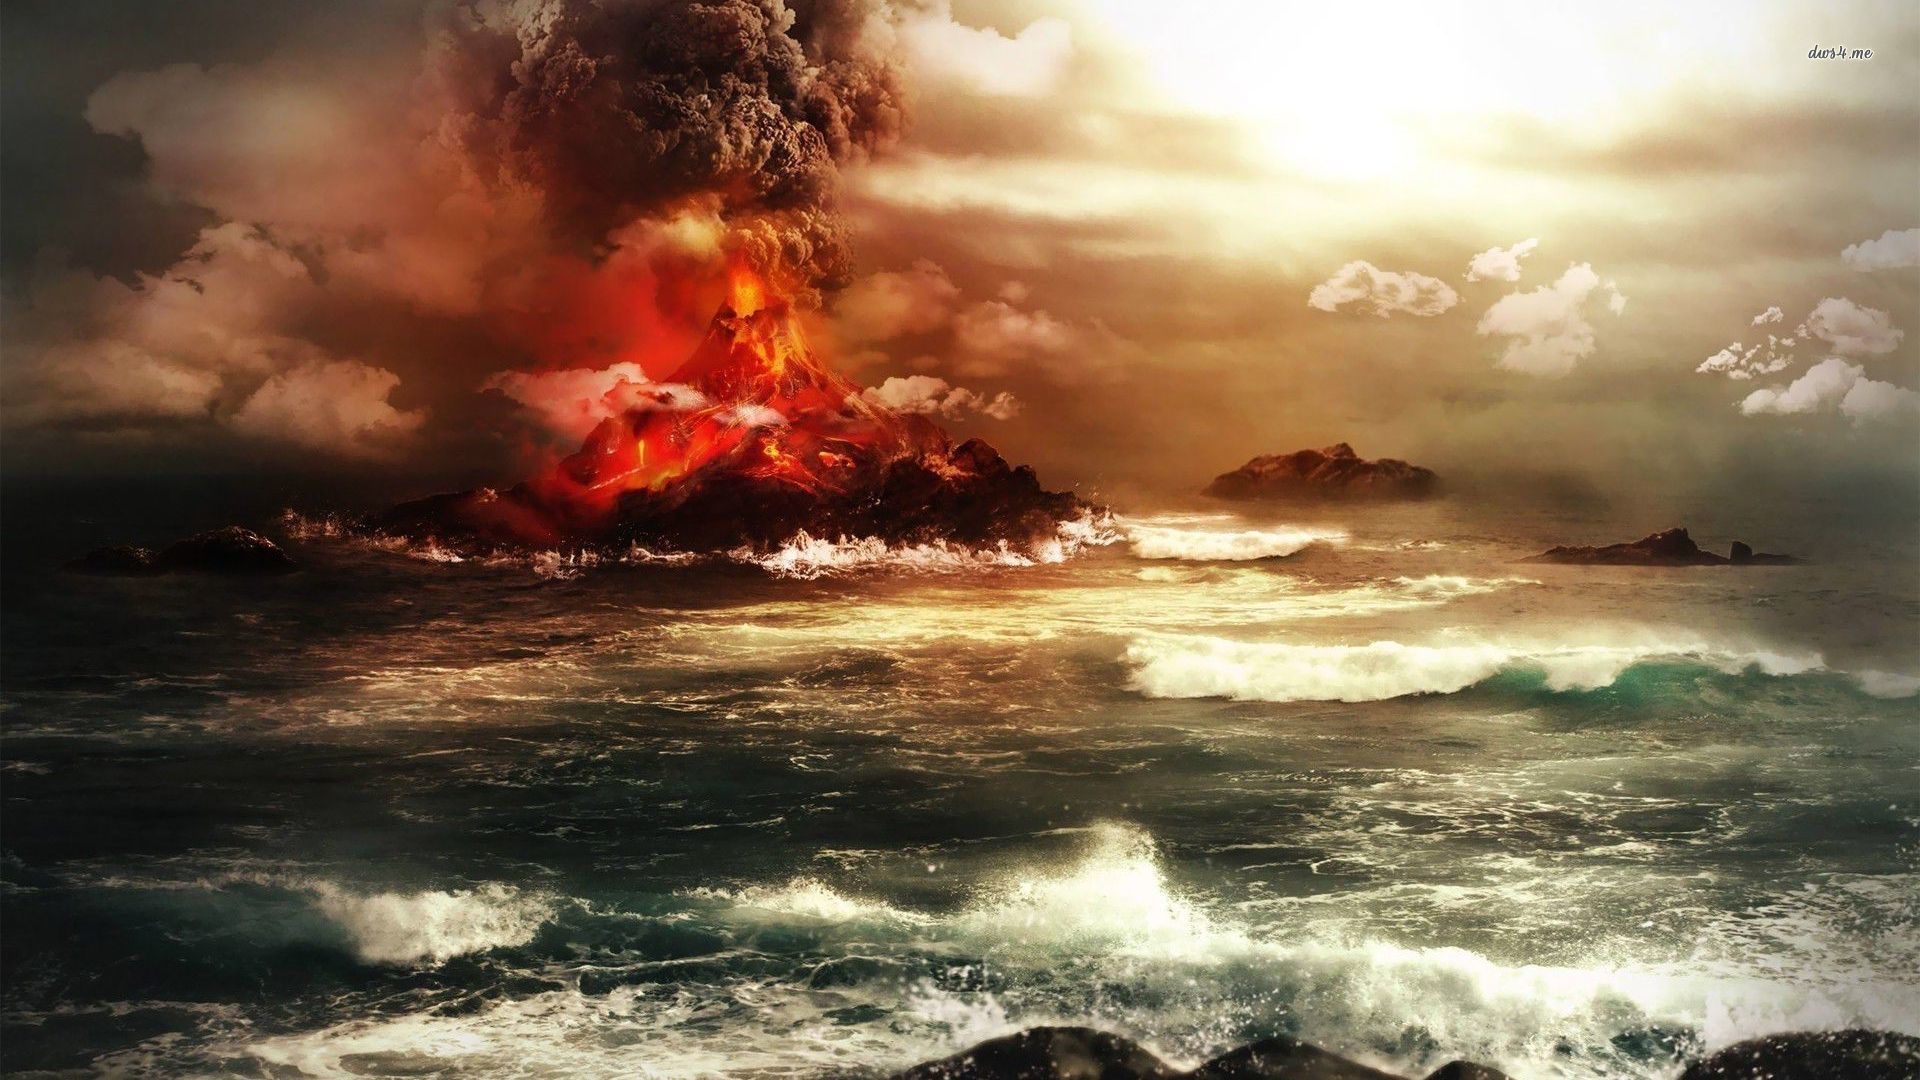 47853-errupting-volcano-in-the-ocean-1920x1080-digital-art-wallpaper.jpg